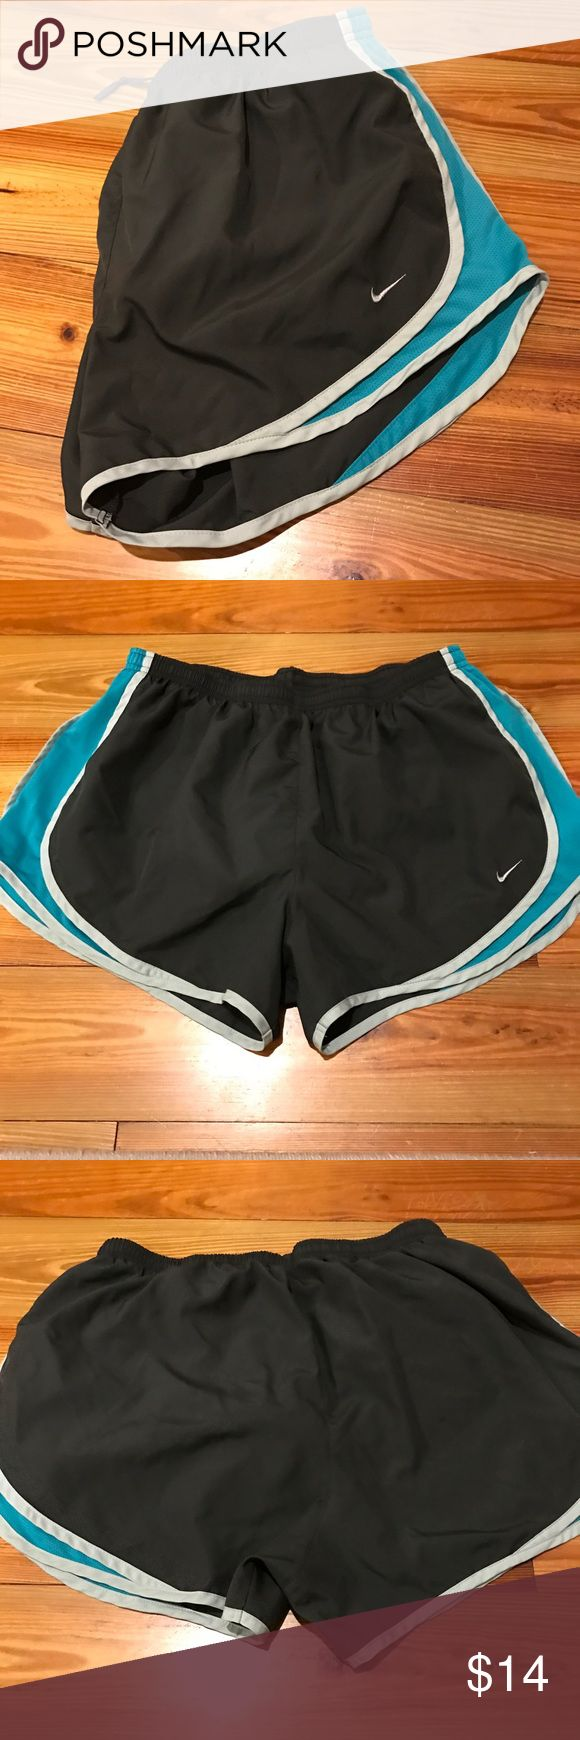 Nike Tempo Dri-fit Shorts Nike Dri-fit Tempo Shorts in great condition. 🛑NO TRADES🛑 FIRM!!! Nike Shorts